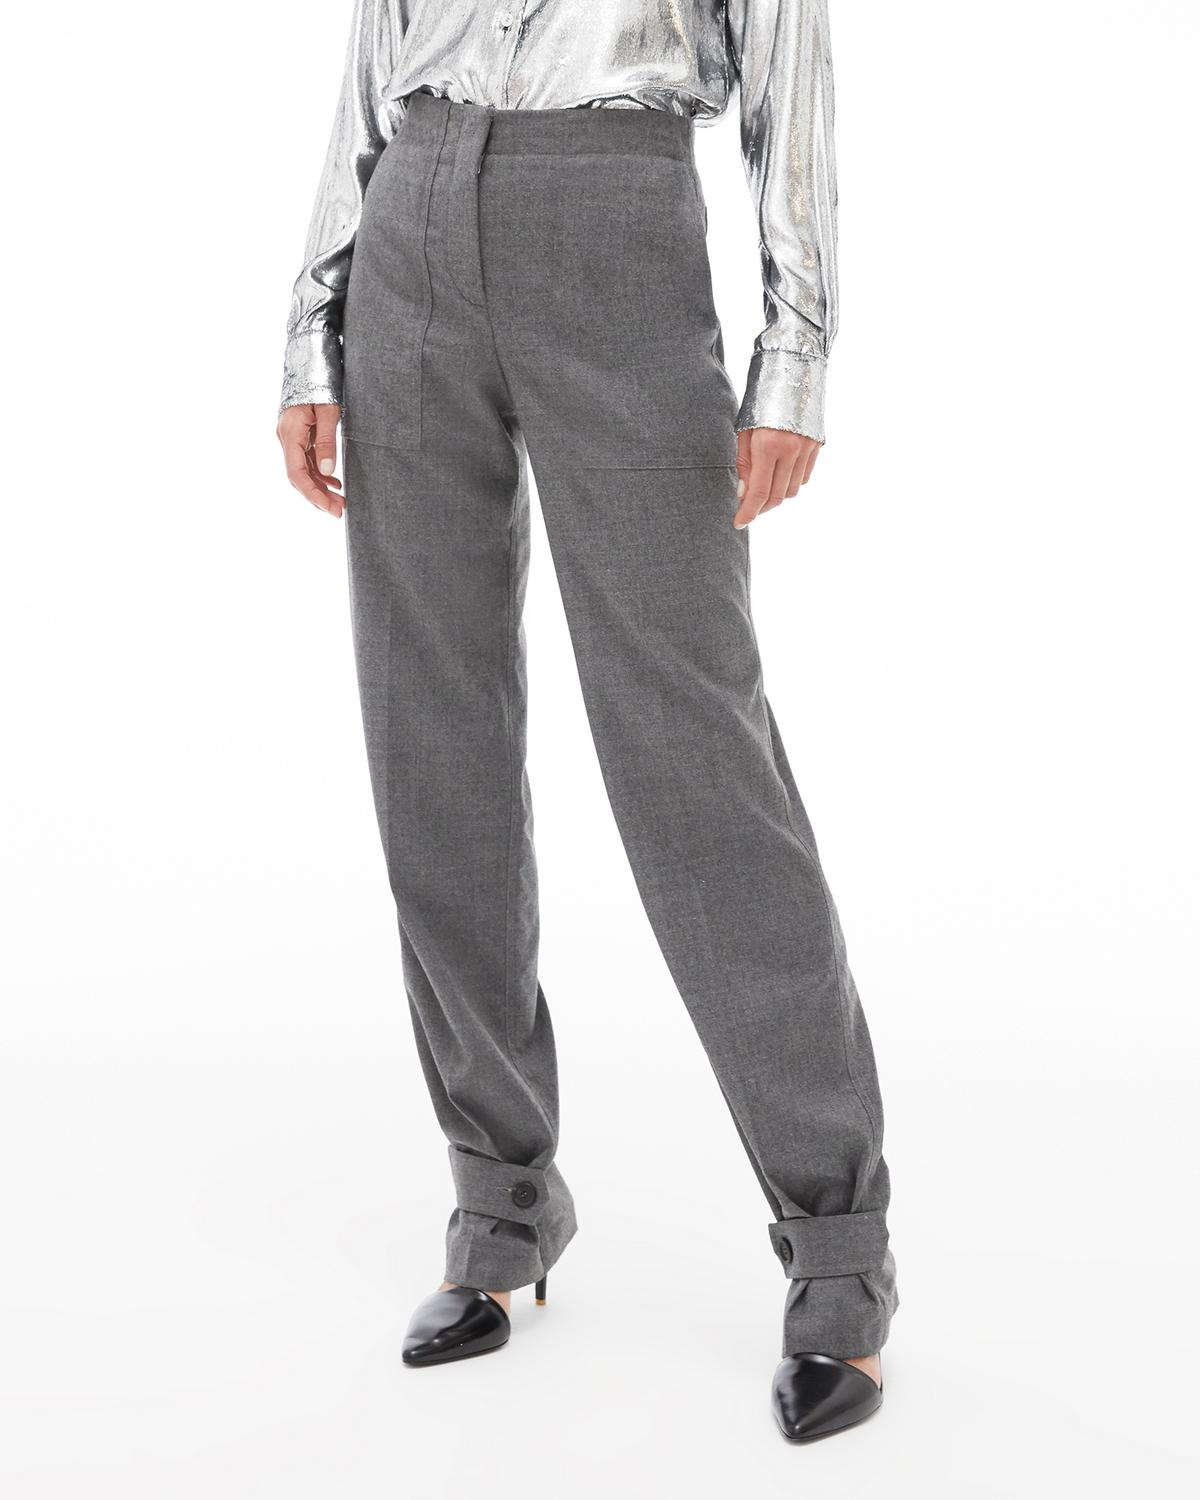 Flannel Military Pant